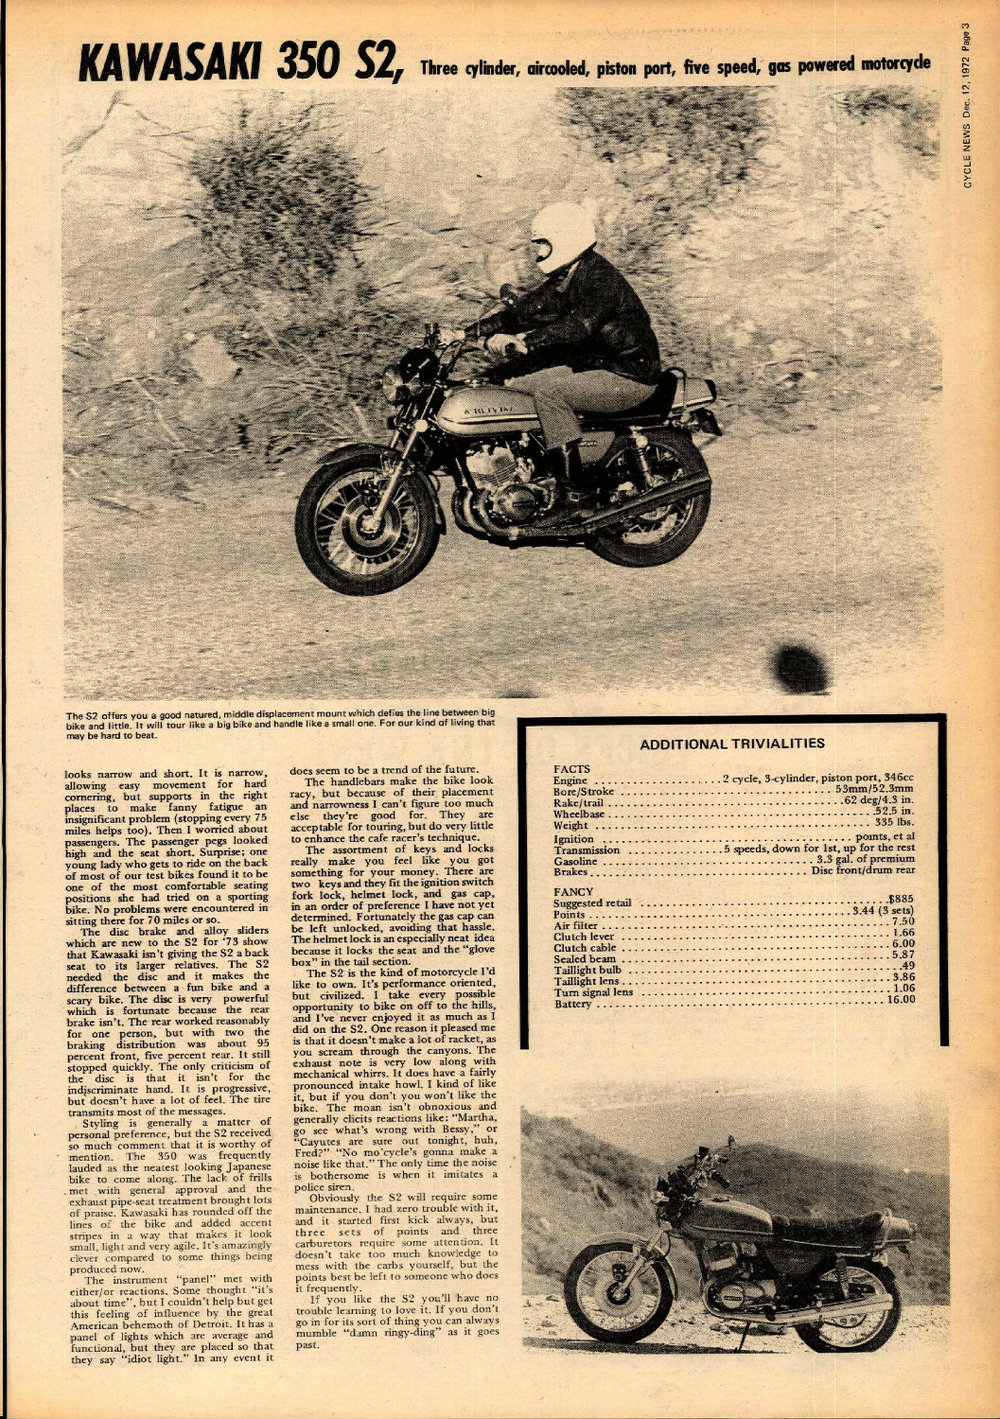 1973 Kawasaki 350 S2 road test 02.jpg